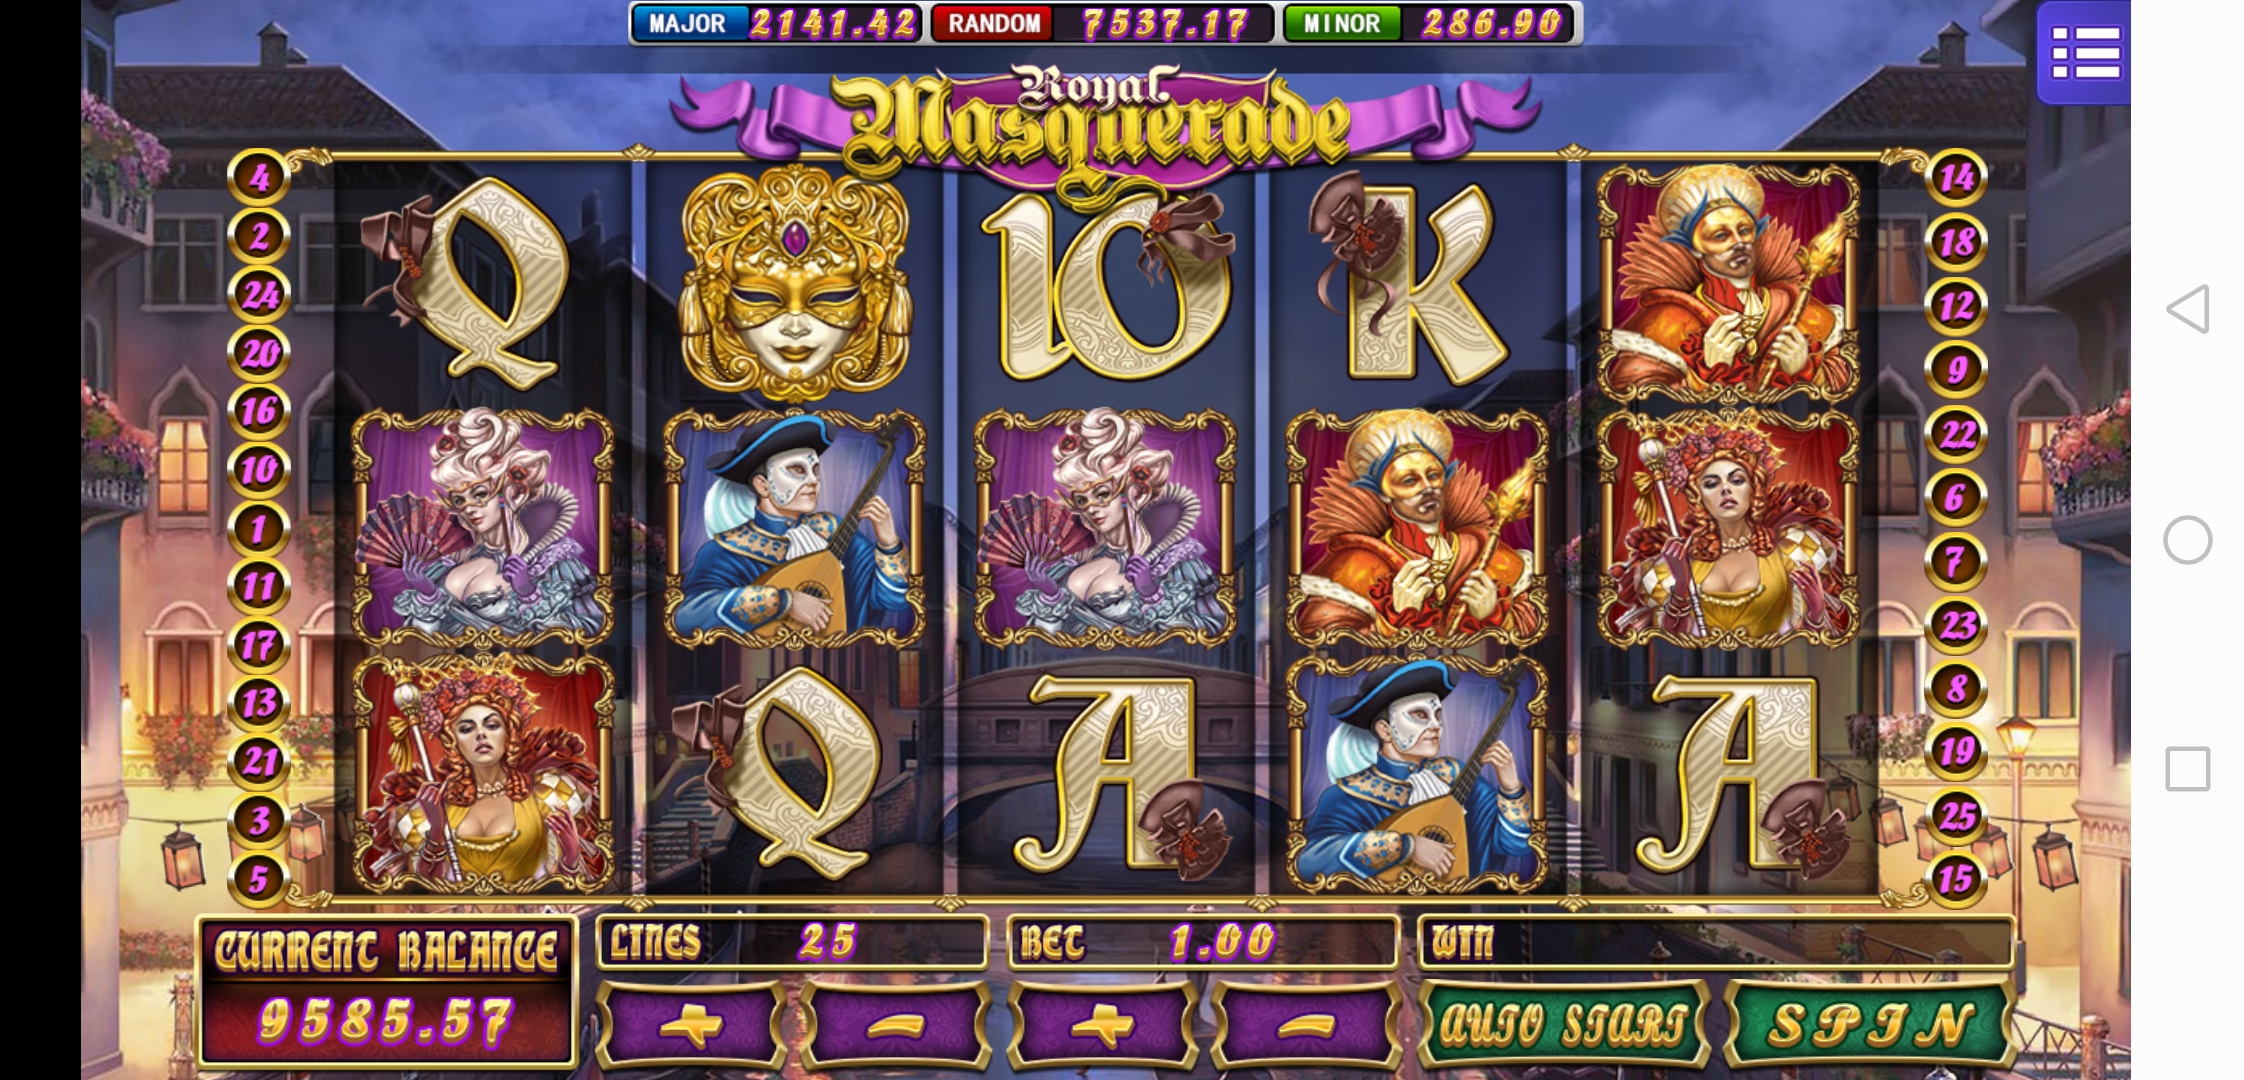 Gameplay of Royal Masquerade Online Slot in Mega888 Online Casino